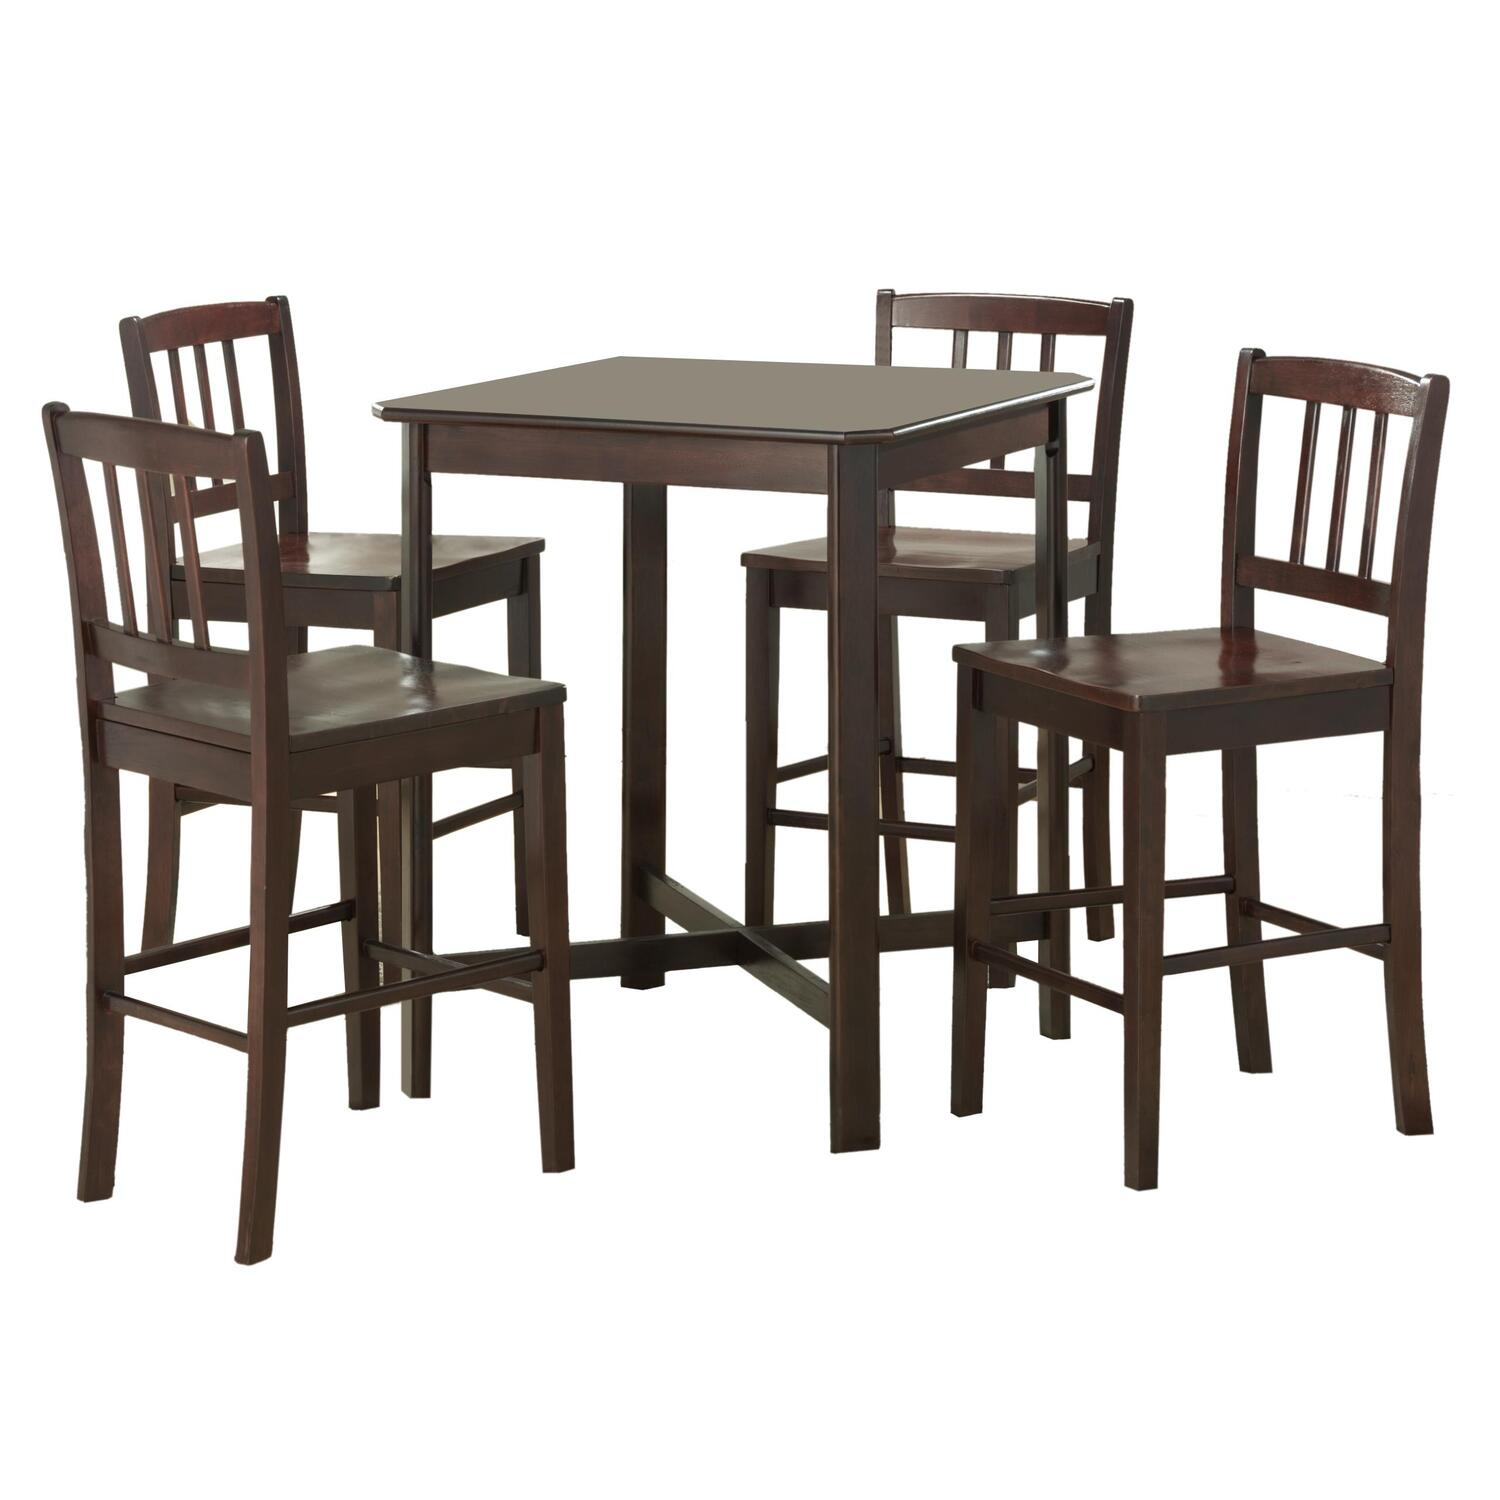 Table Top High Chair 5 Piece Solid Wood Pub Table Set Dark Wood Ojcommerce